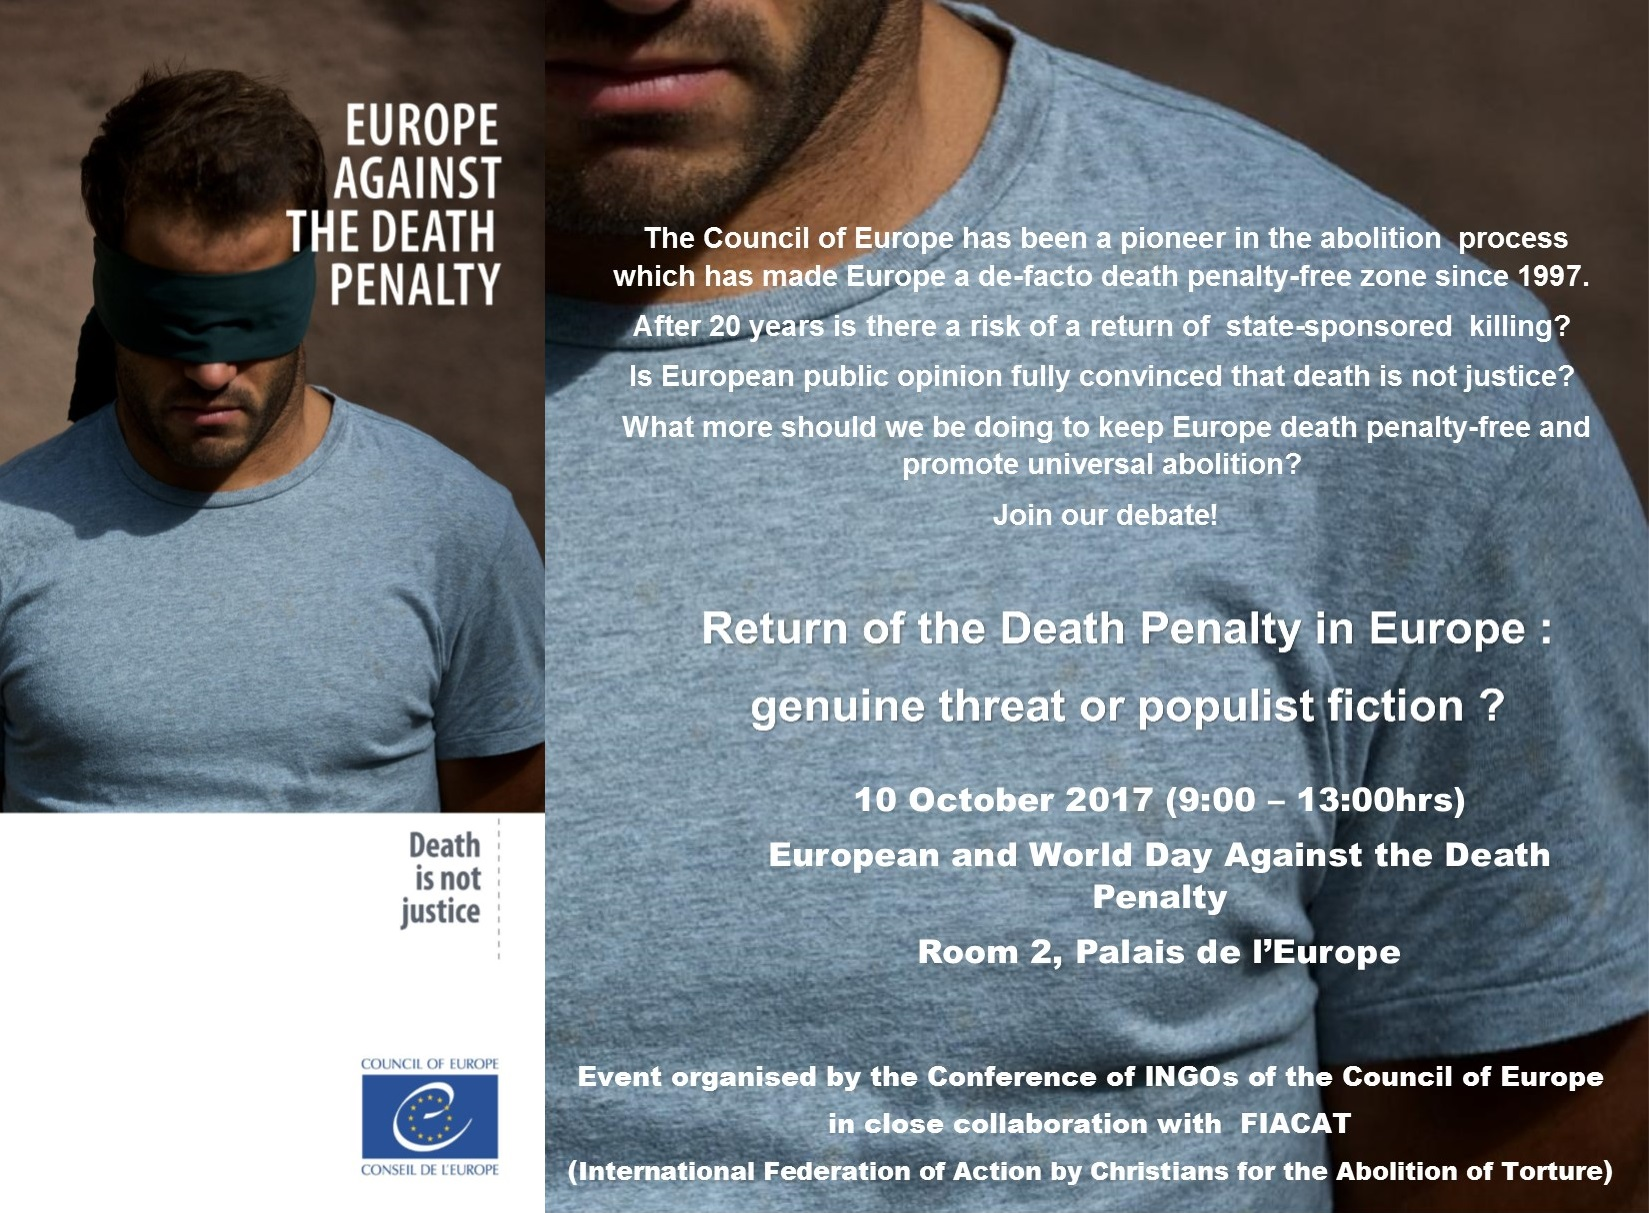 Debate: Return of the death penalty in Europe: genuine threat or populist fiction?